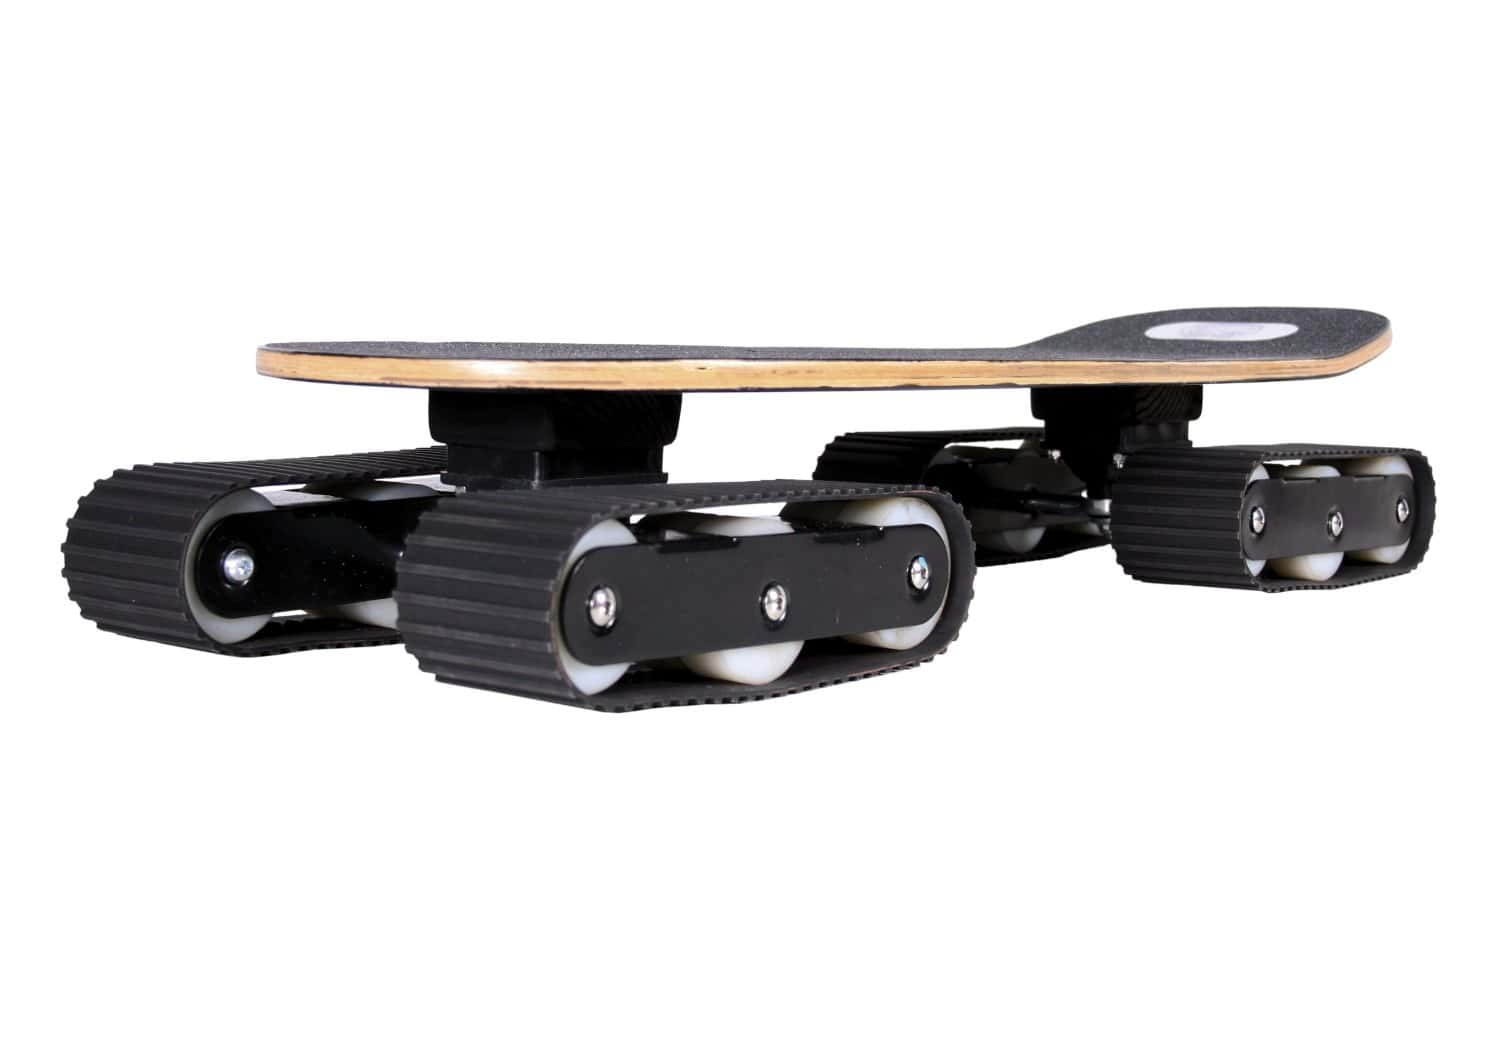 Awesome All Terrain Skateboard